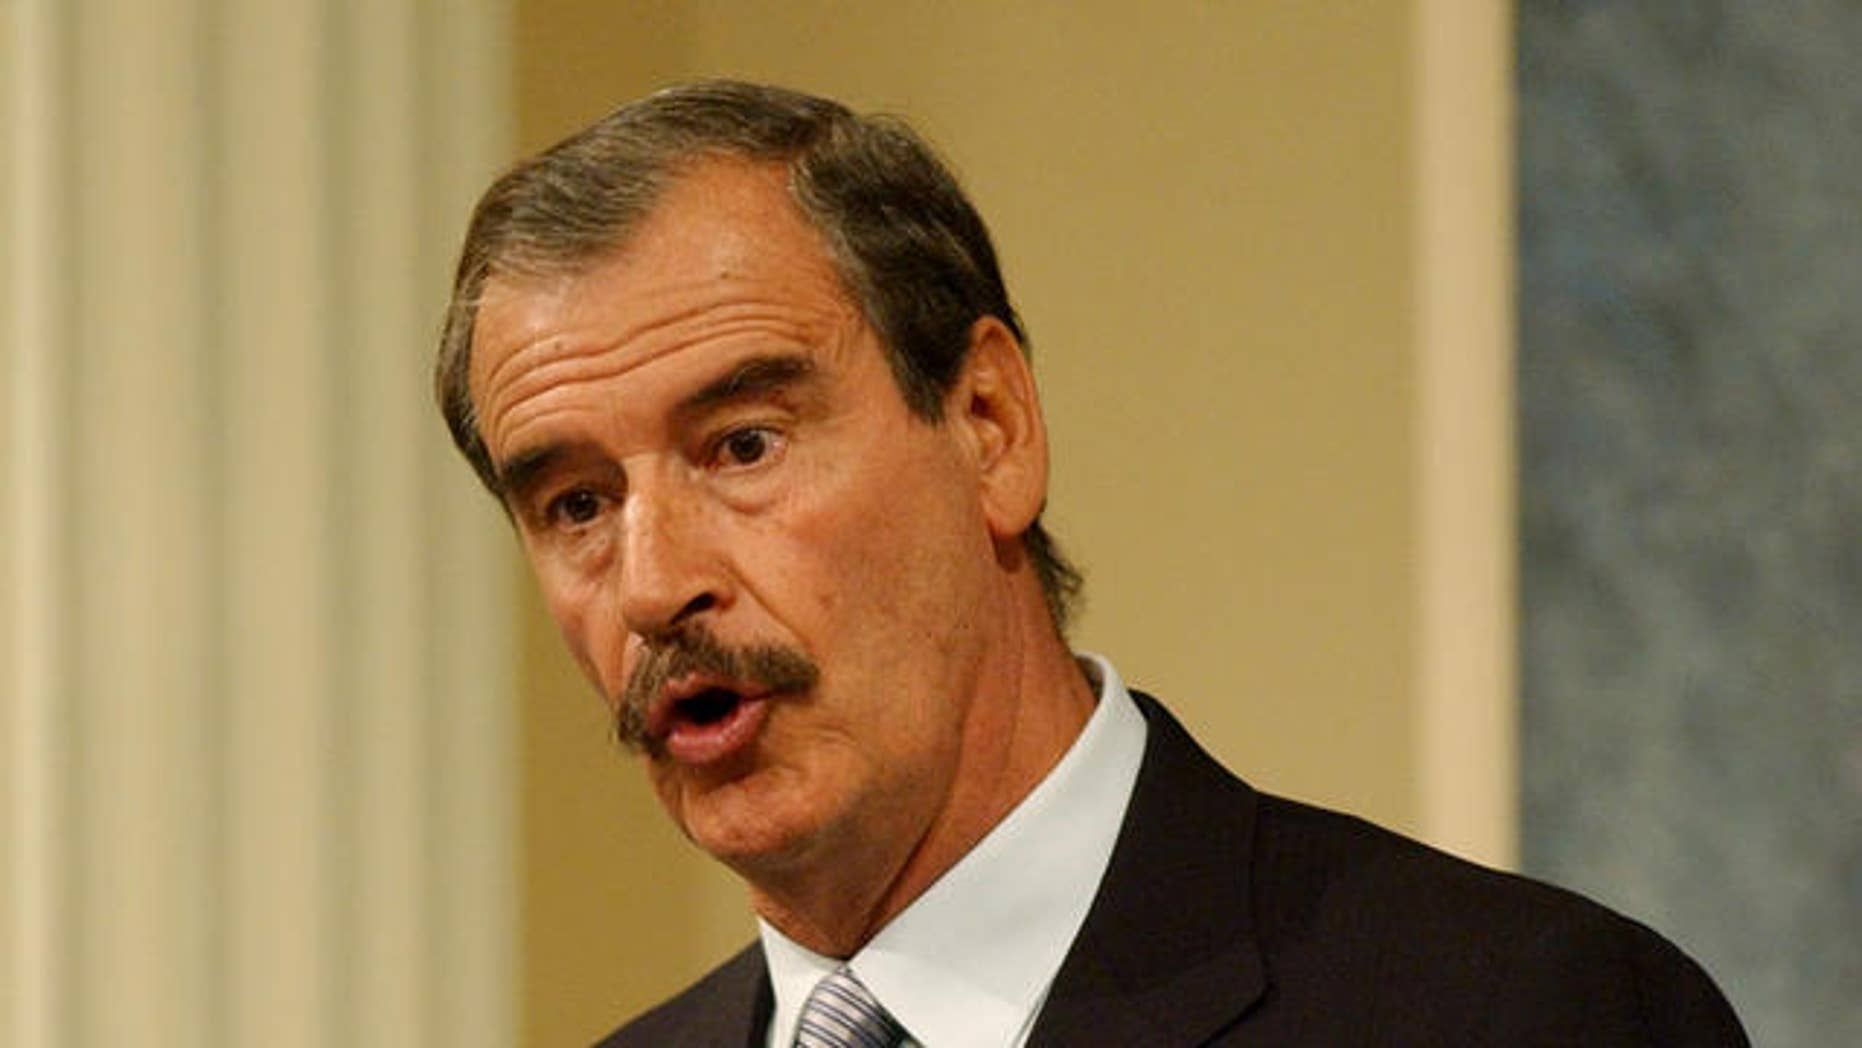 Vicente Fox, former Mexican President.